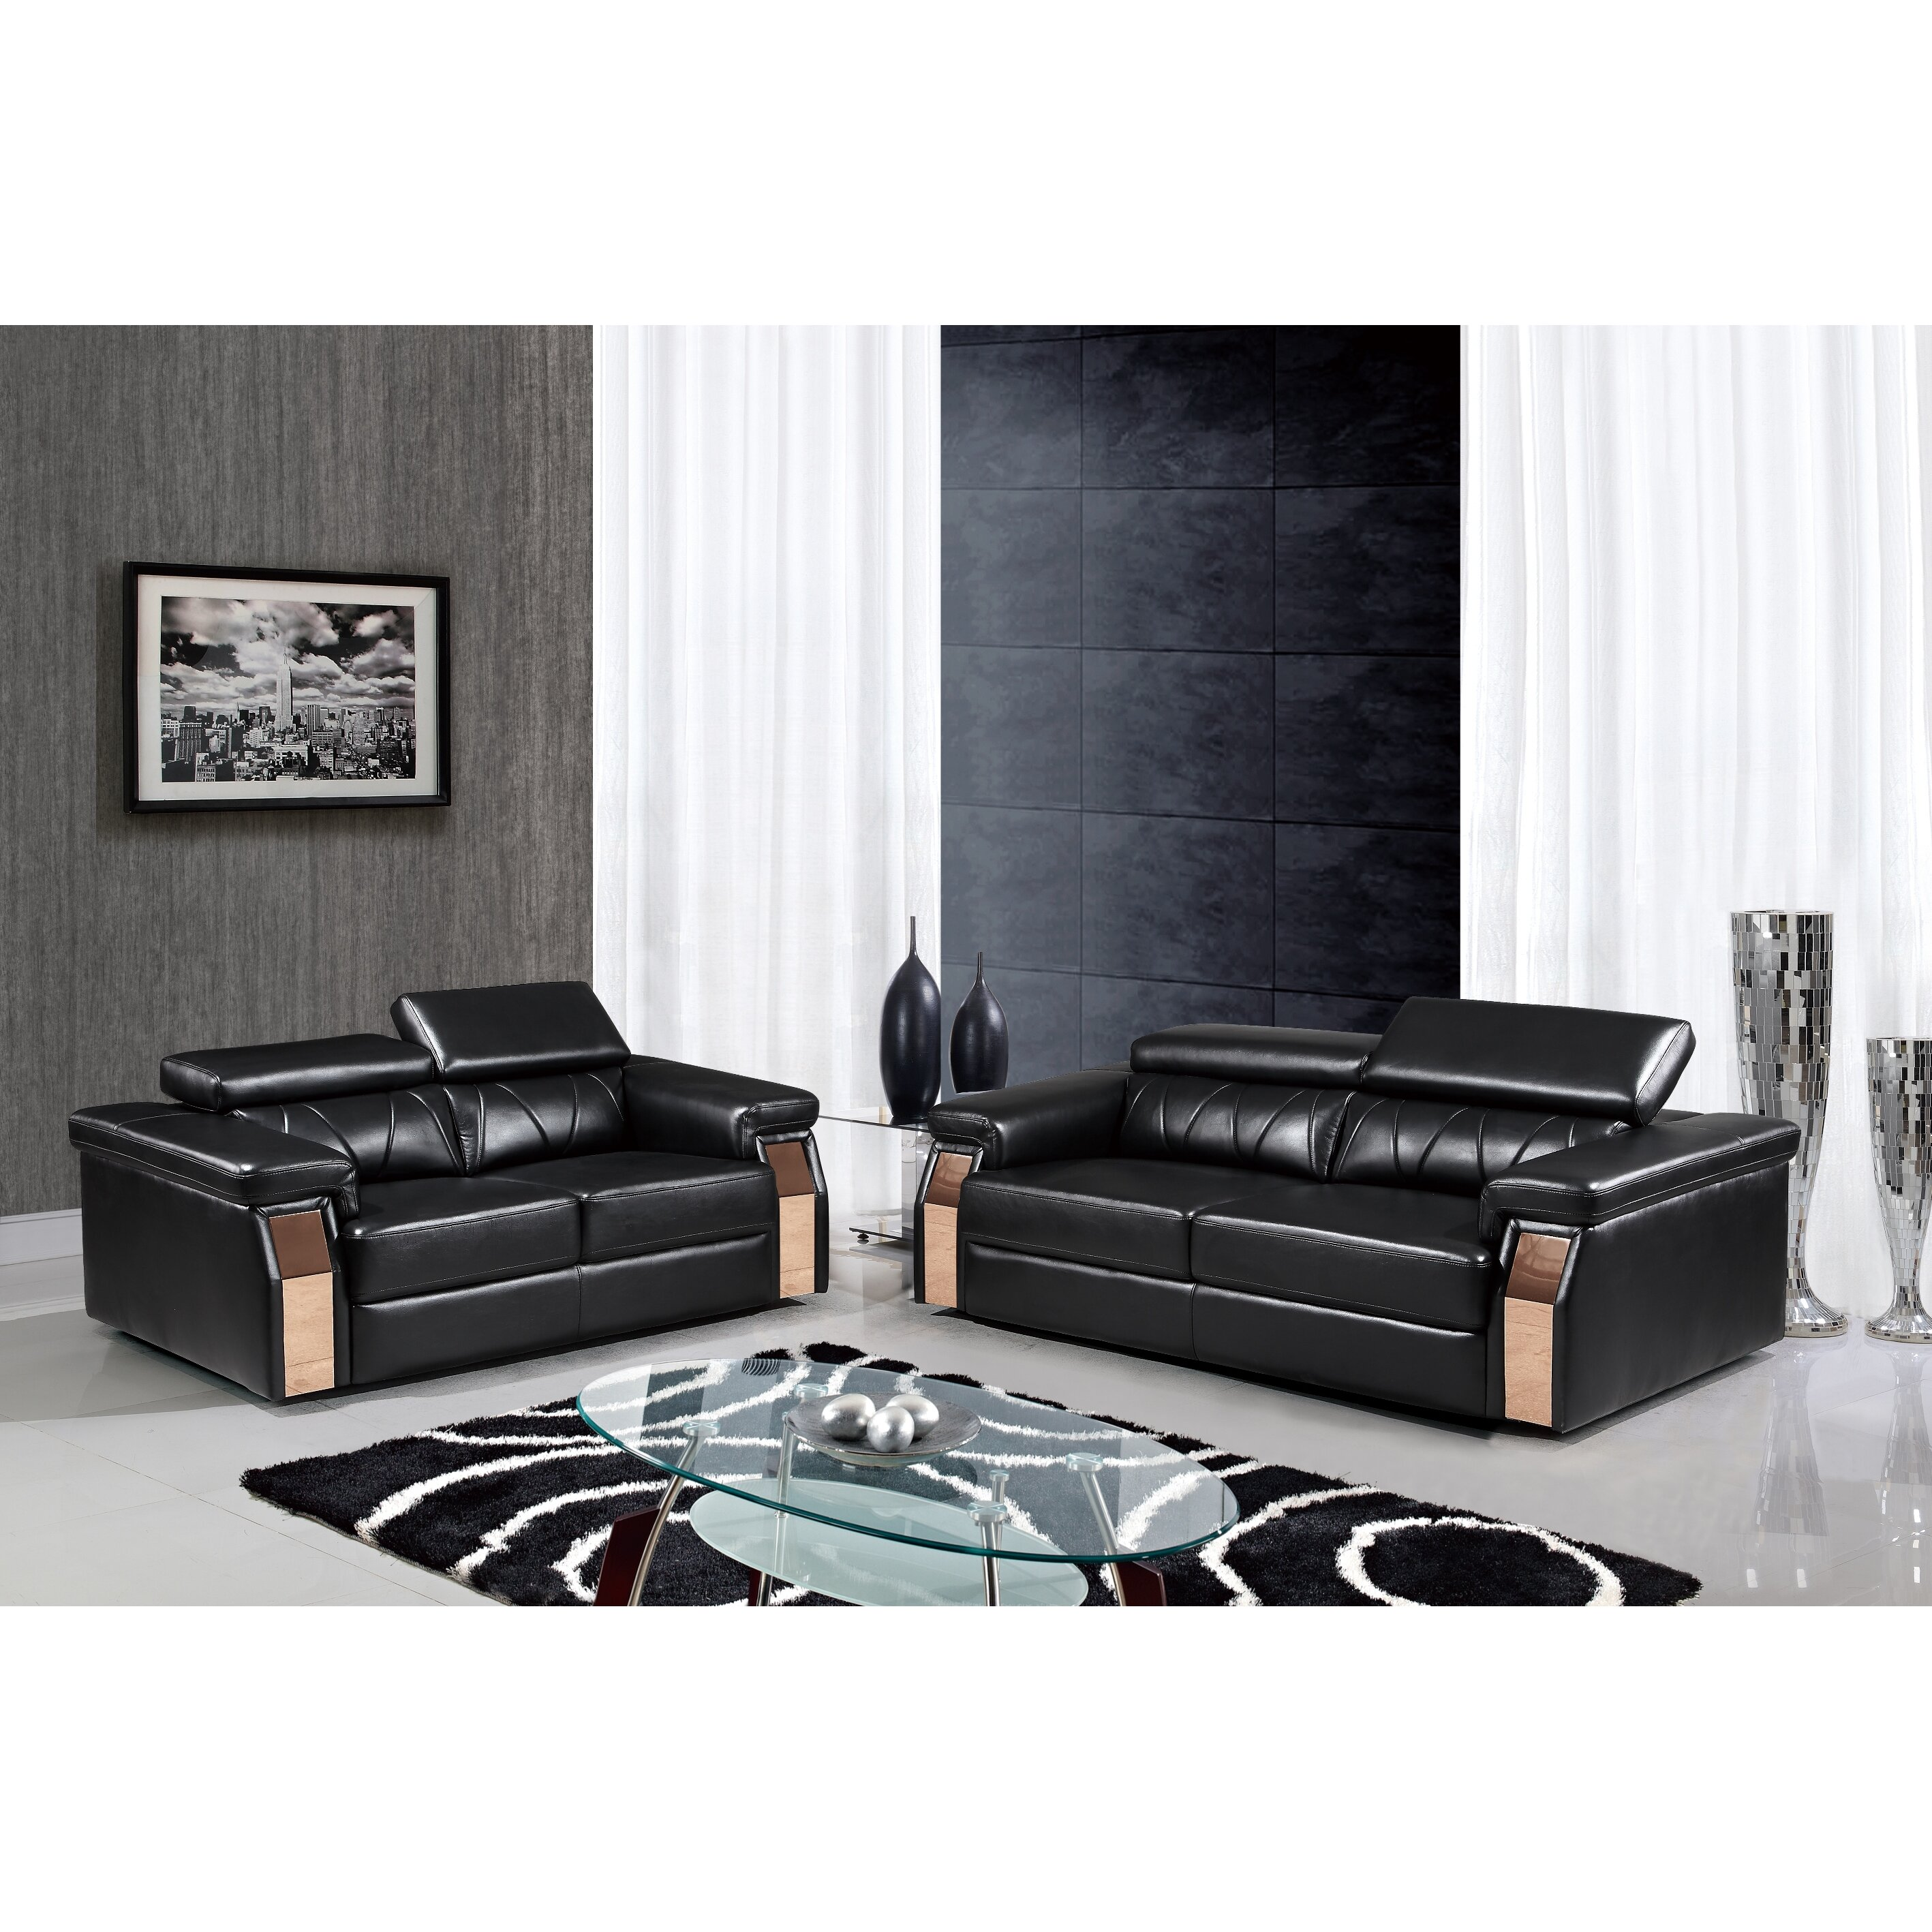 Furniture living room furniture living room sets global furniture